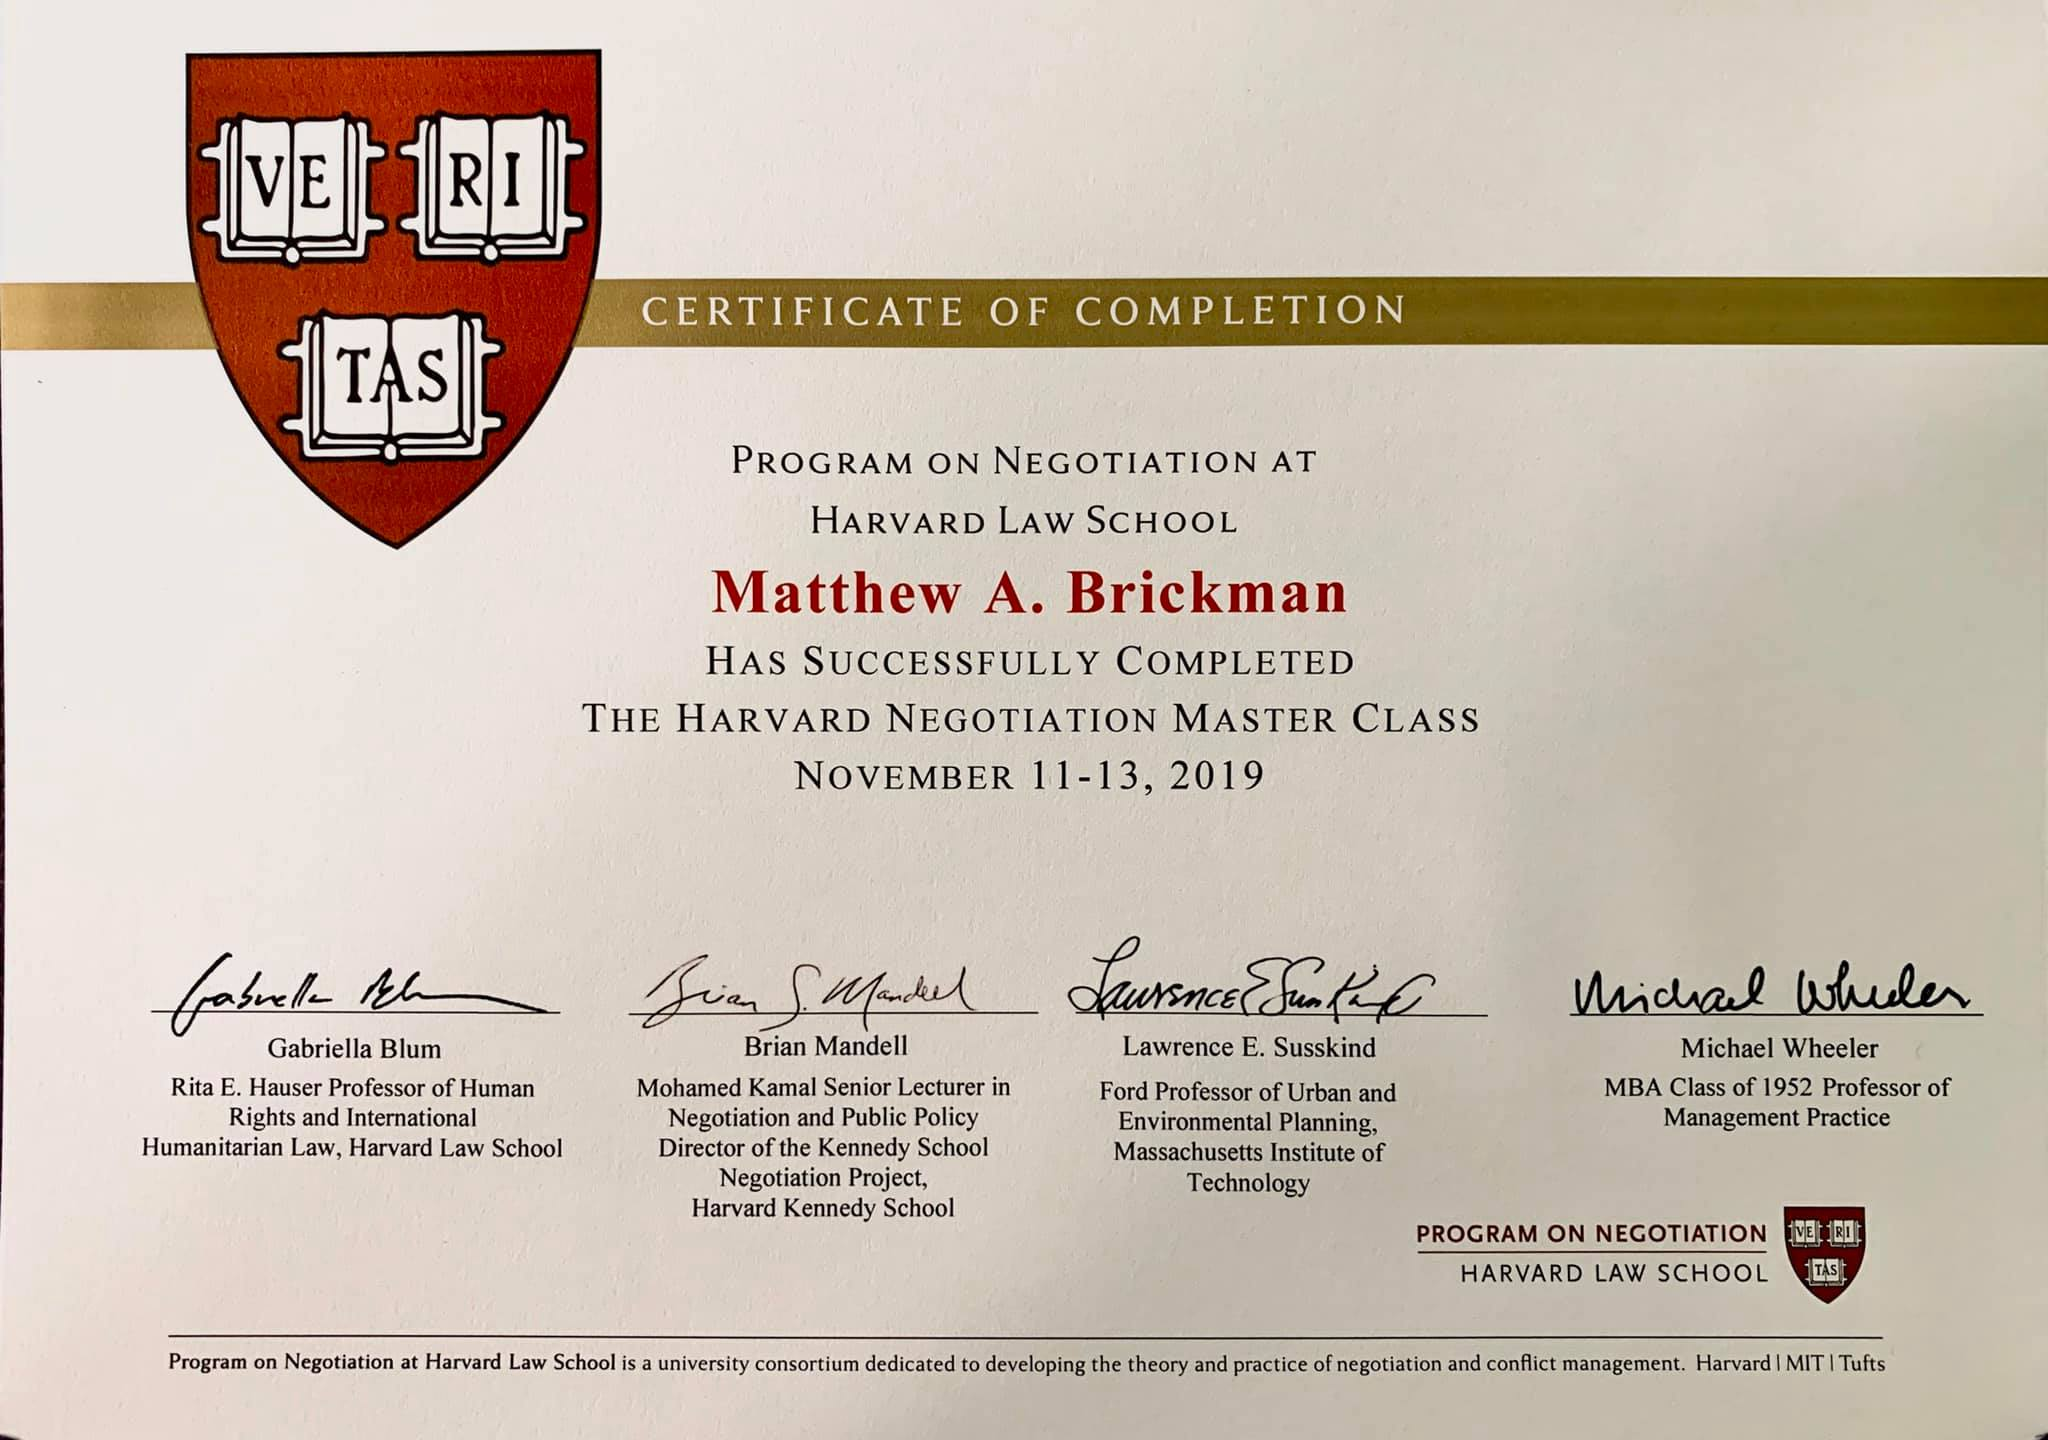 Harvard Business School - Certificate of Completion